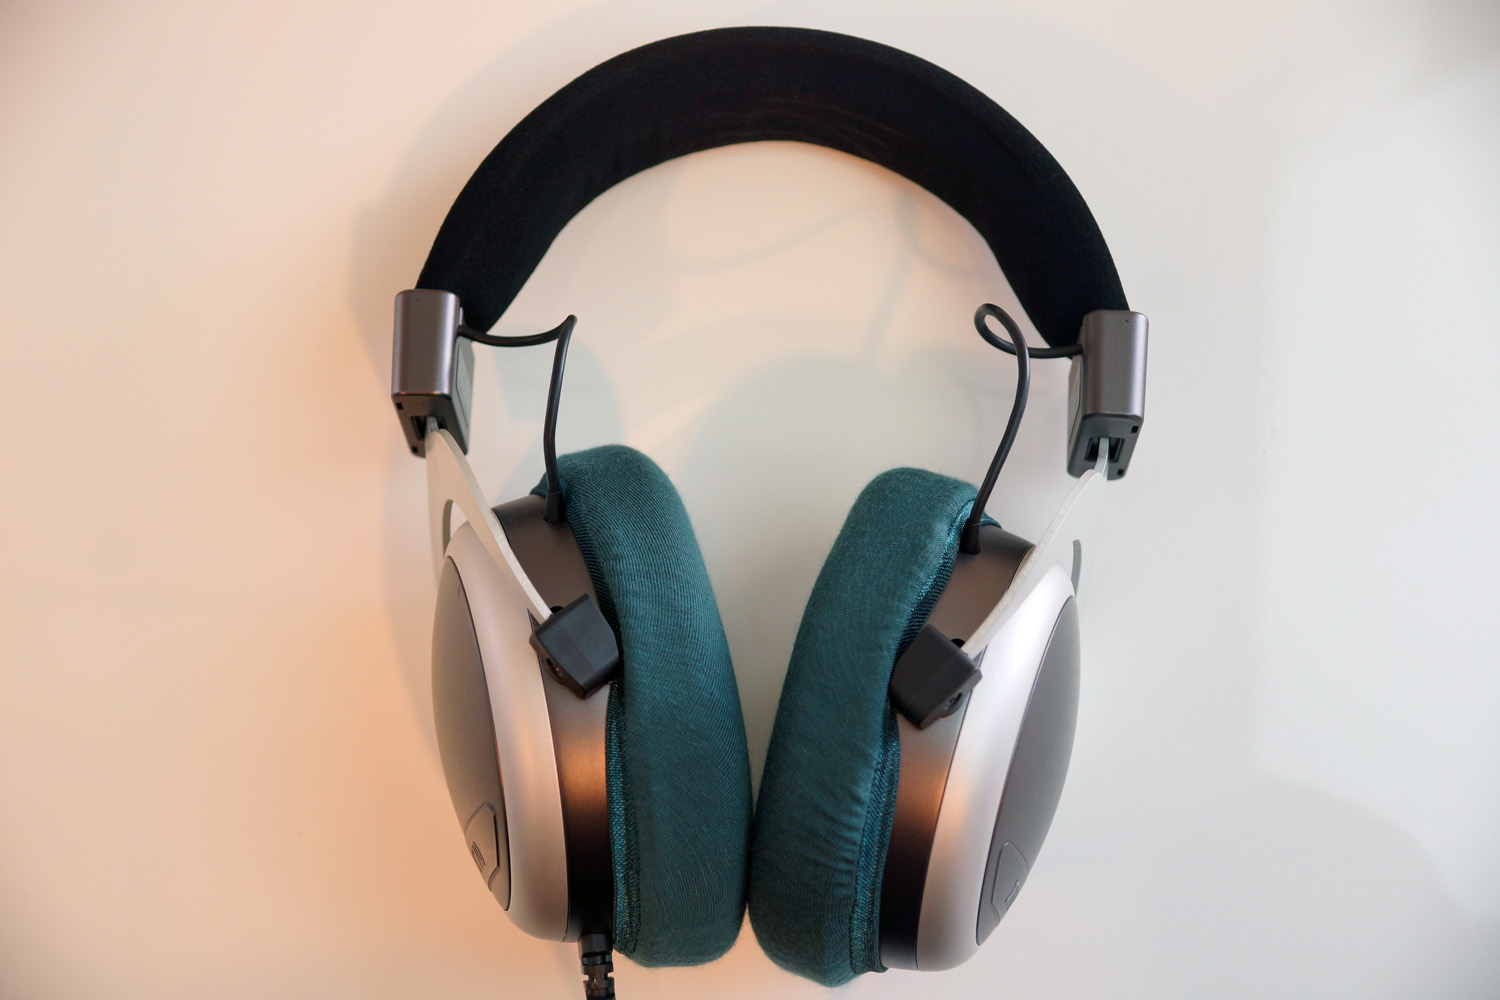 BeyerDynamic T70 ear pads compatible with mimimamo